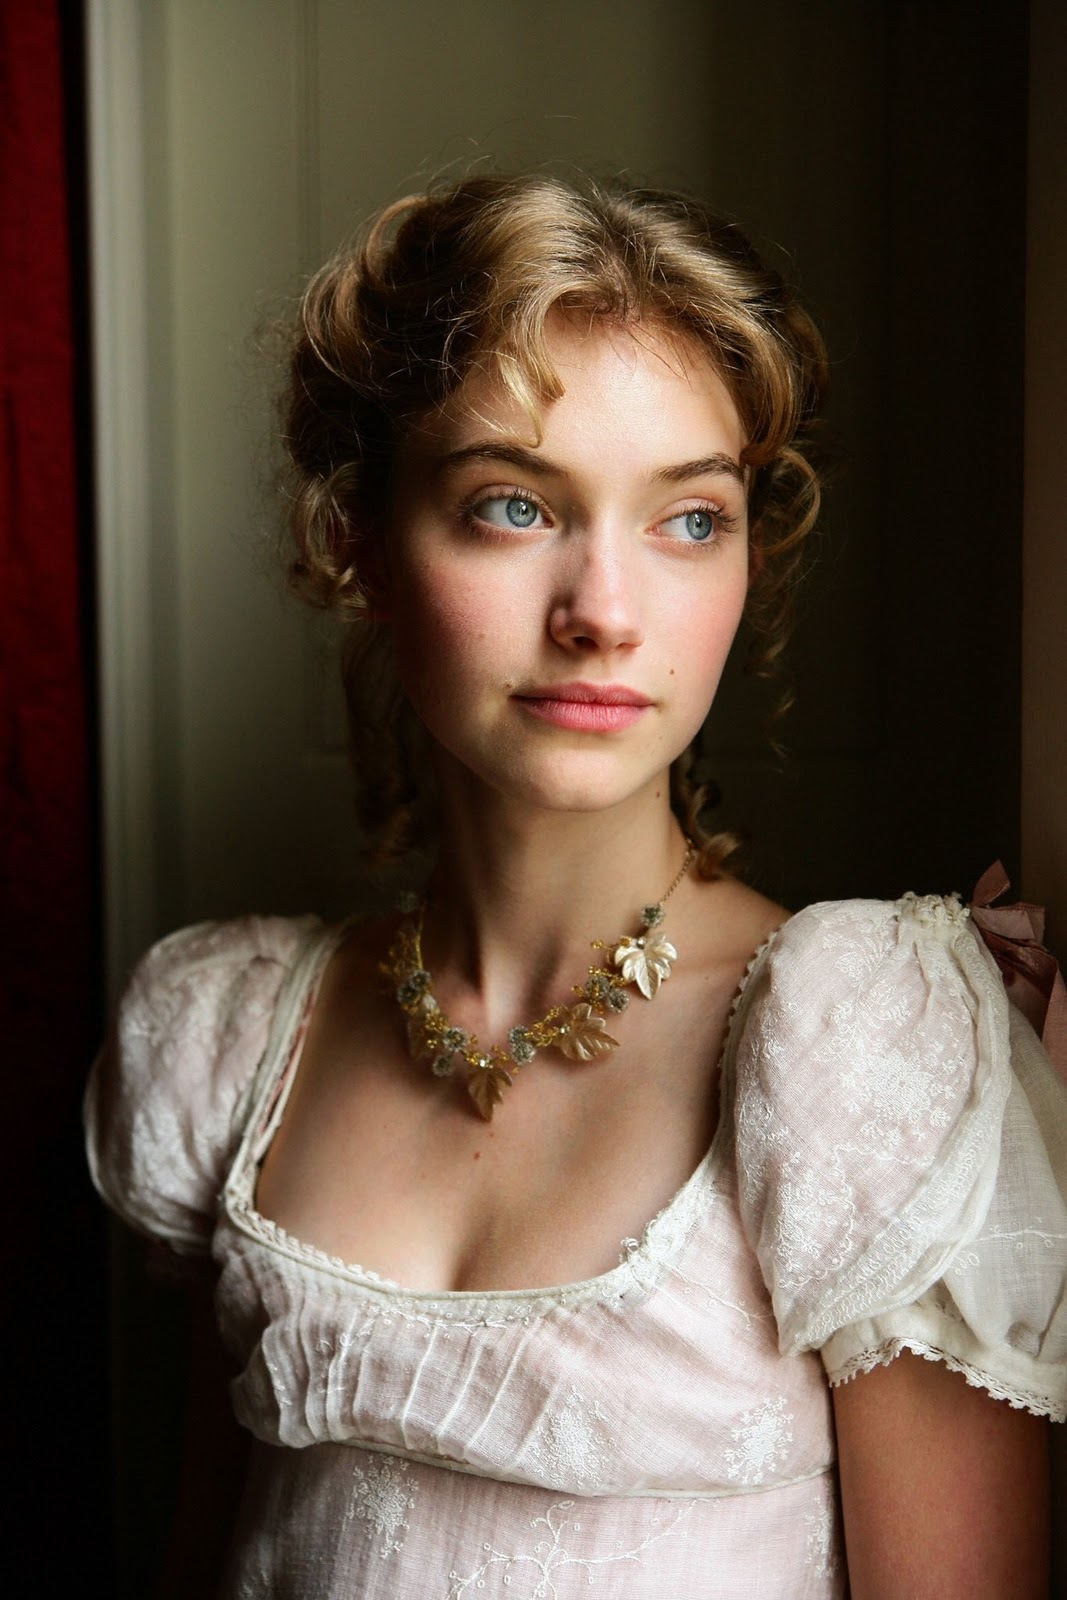 Imogen Poots Style Pictures - A Beautiful British Actress-4275